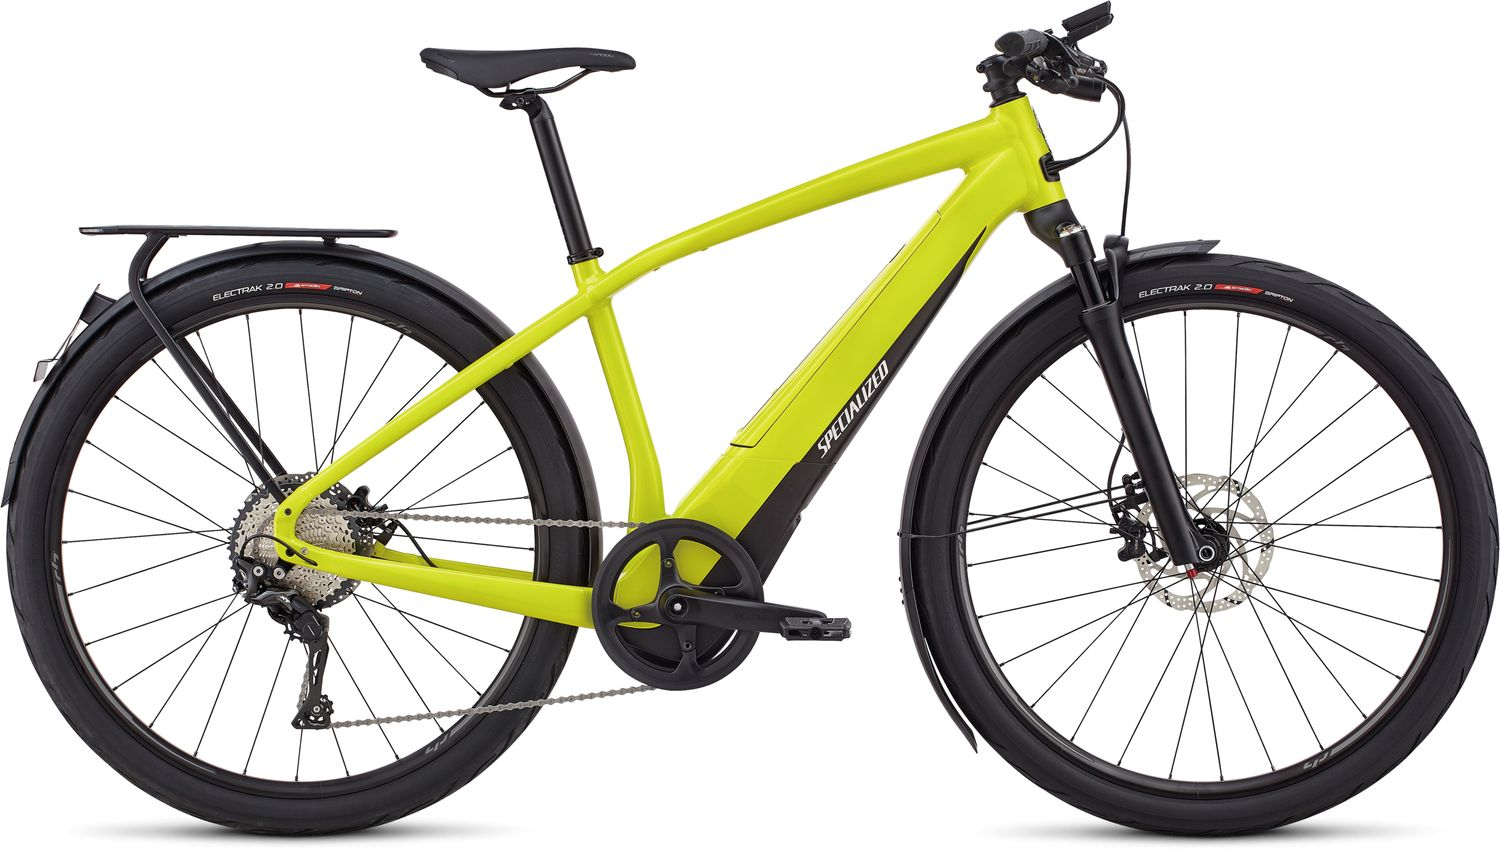 Specialized 2019 Turbo Vado 6.0